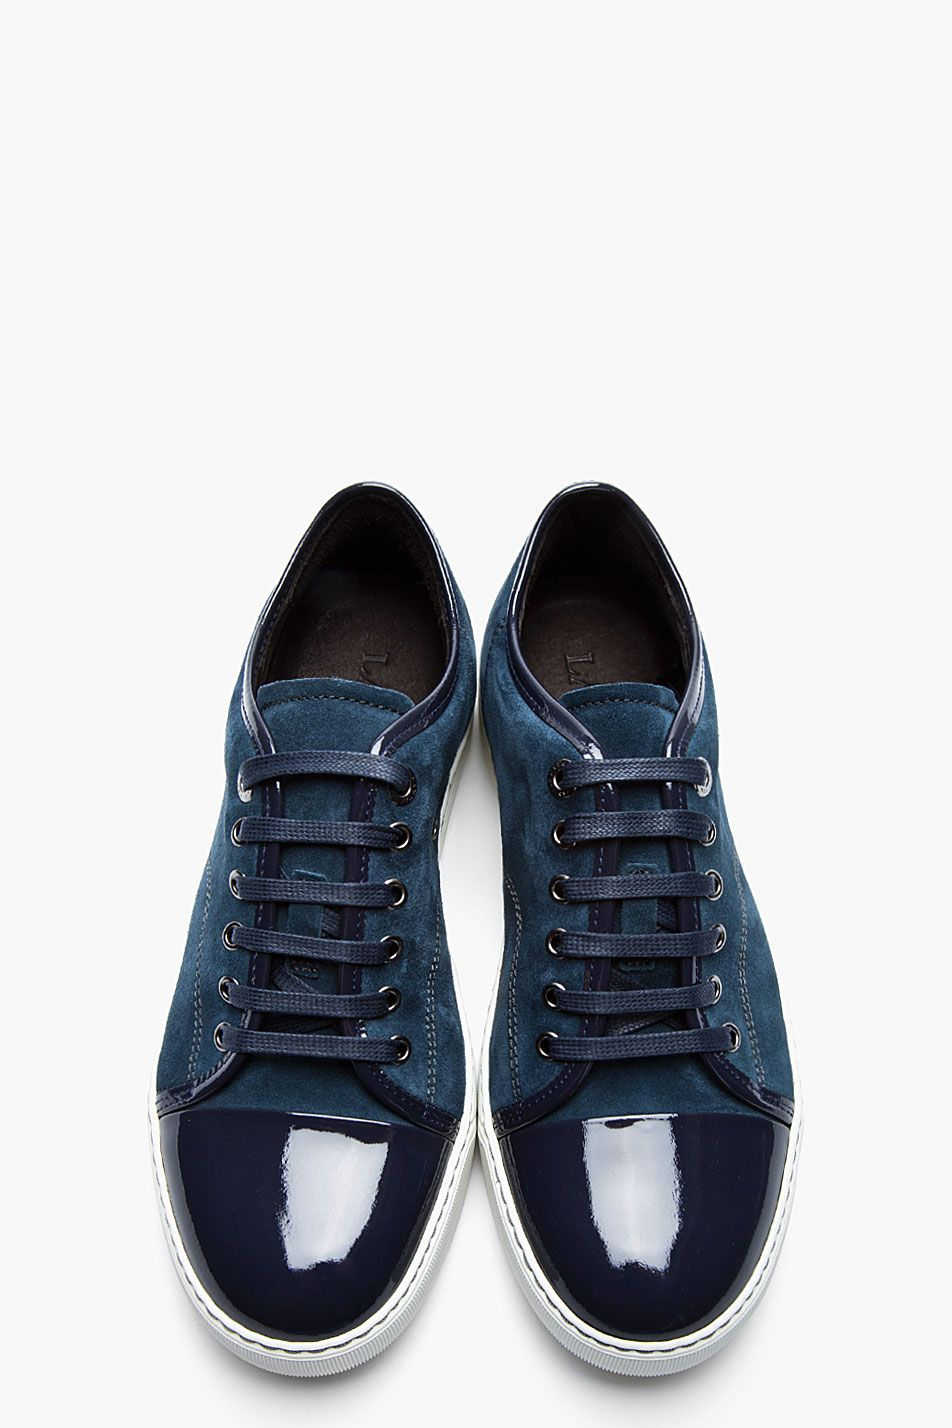 17 Best images about My classic Shoes on Pinterest | Mens casual ...